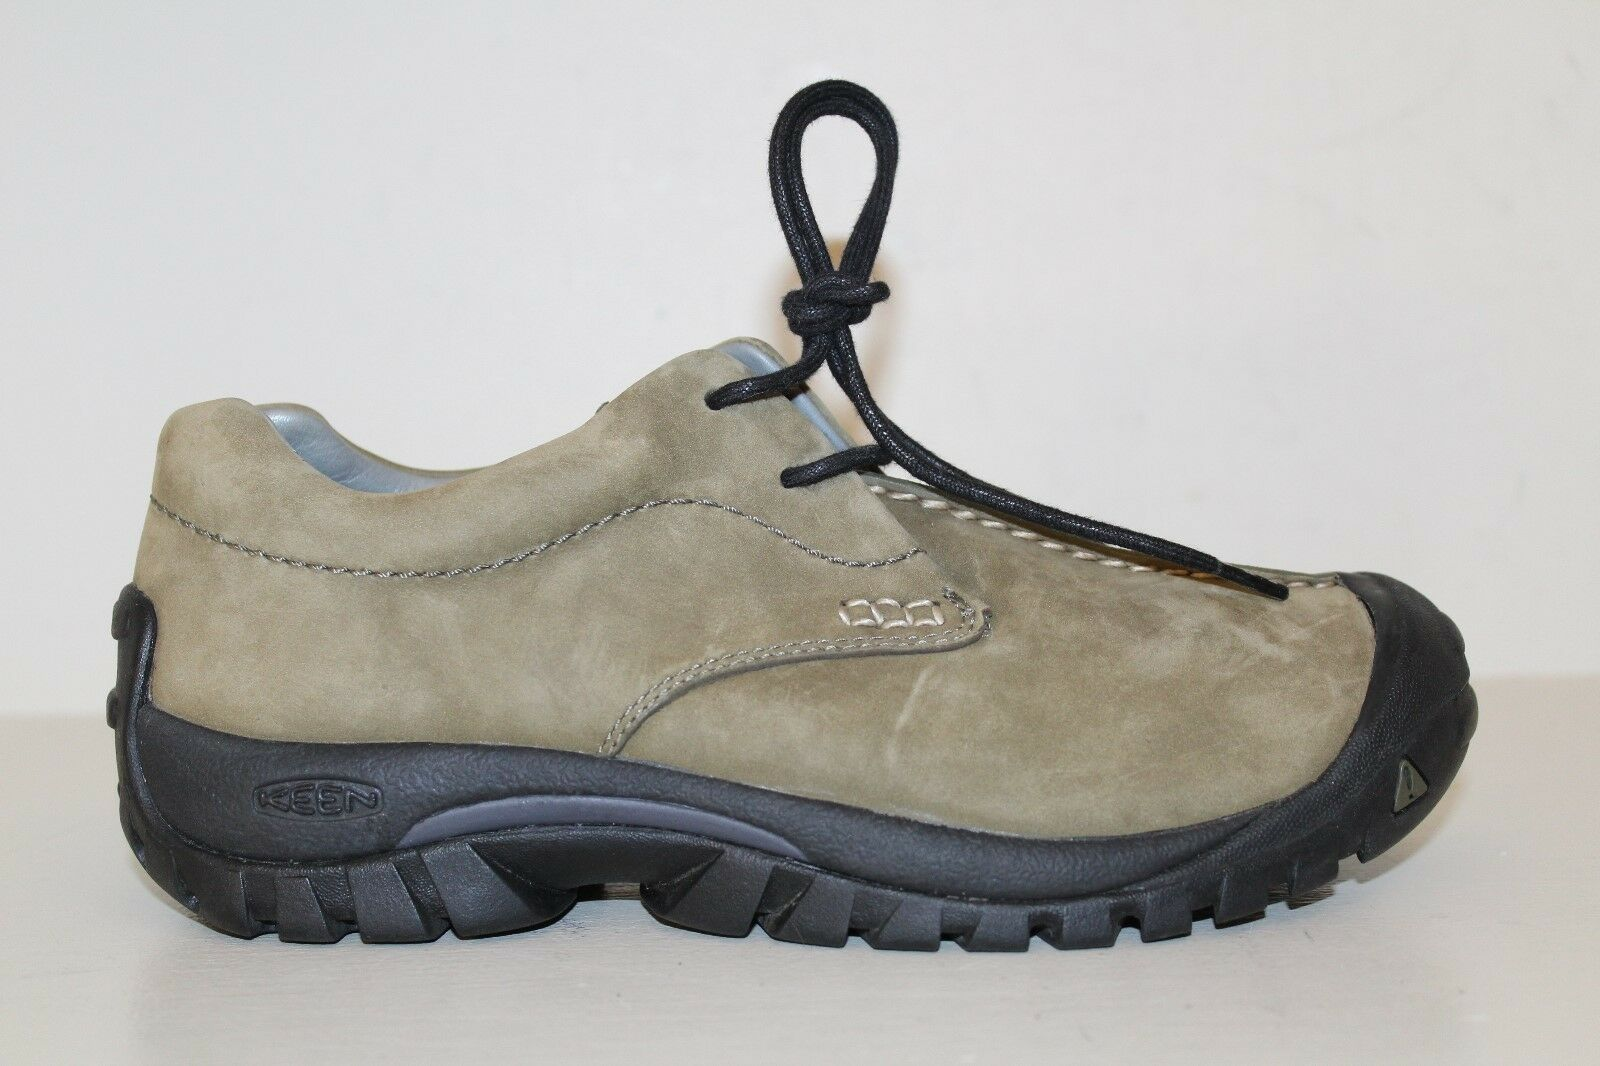 KEEN Womens Oxford Sneaker shoes Sz 7 Brown Nubuck Leather Casual Lace Up